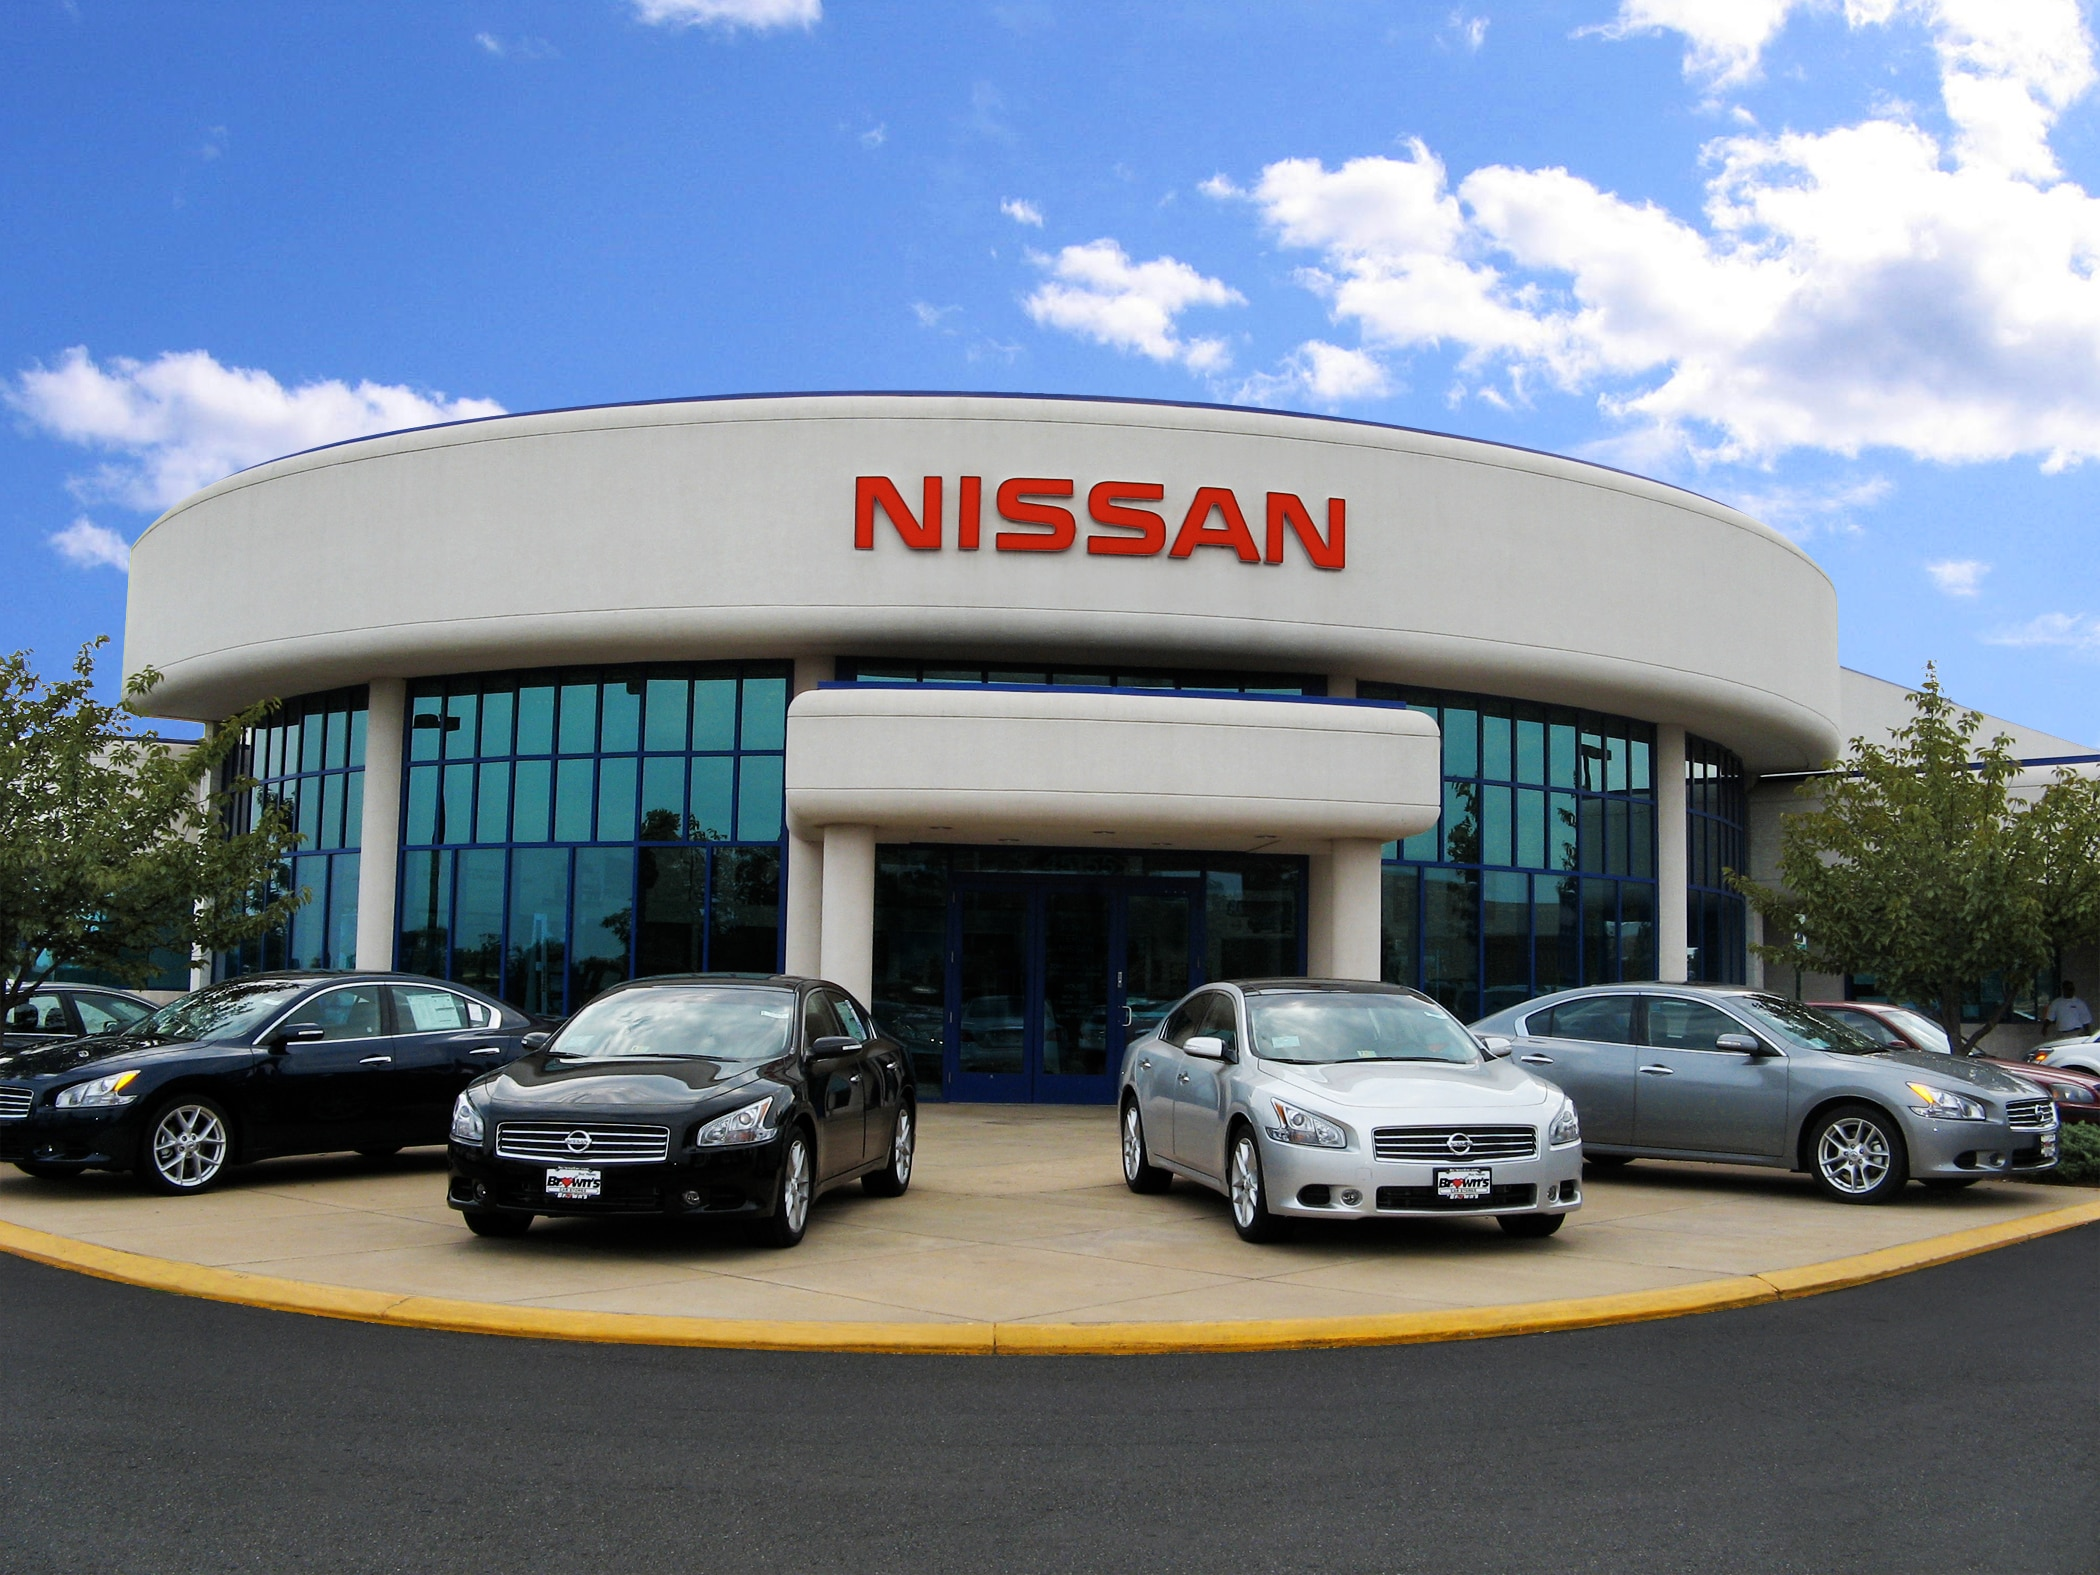 At Brownu0027s Dulles Nissan ...